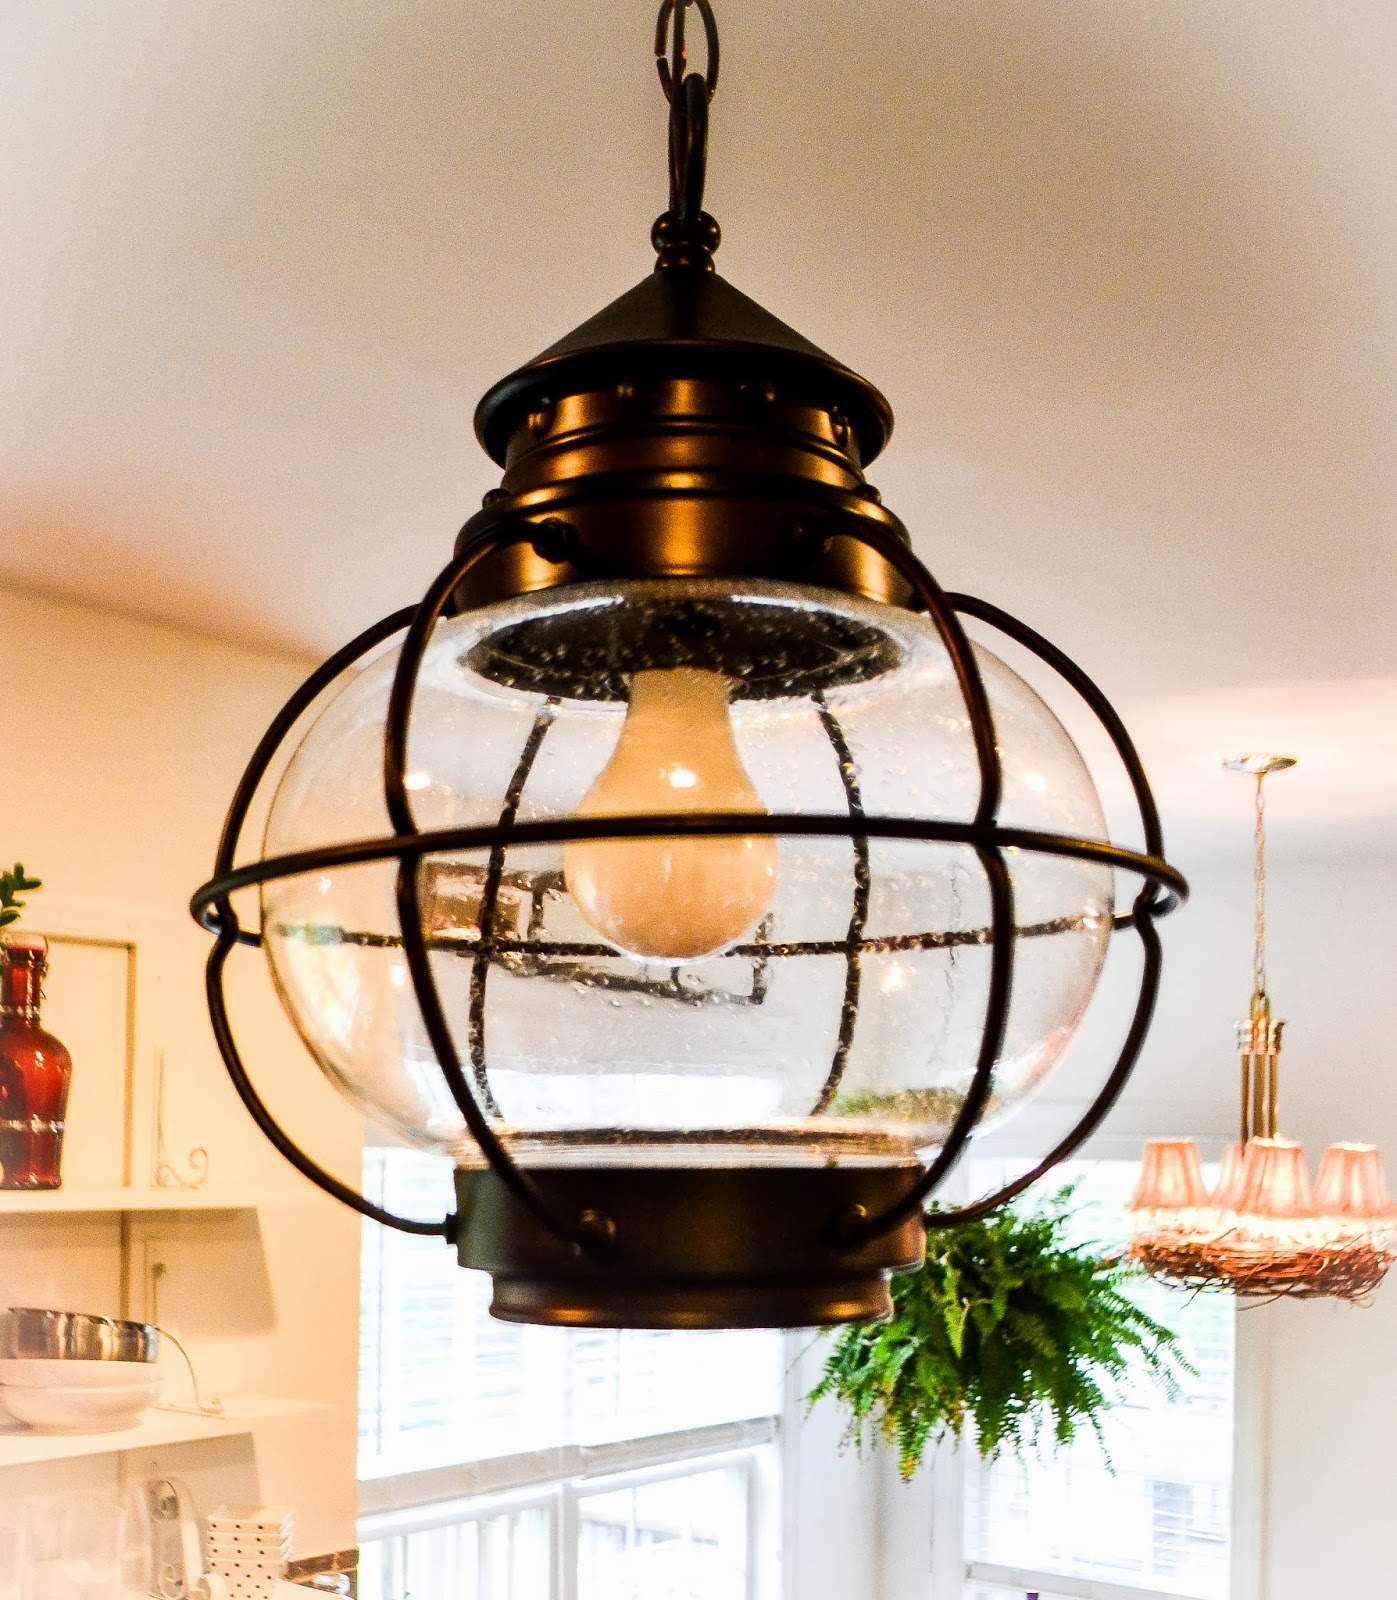 Down To Earth Style Adding Charm With A Light Fixture Wiring Ceiling Without